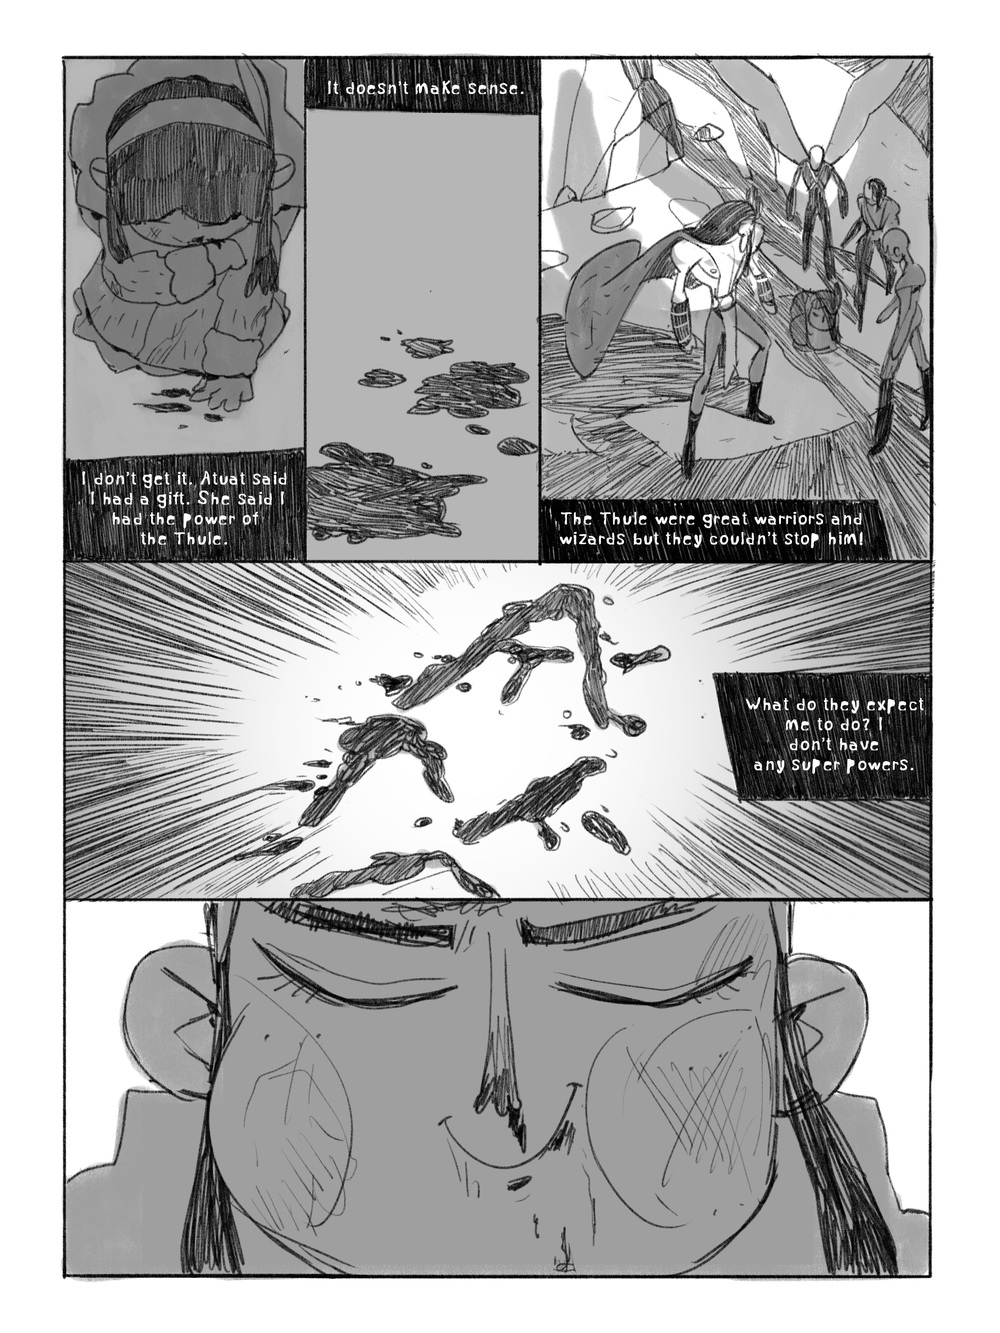 Sticks&Stones_Page10_final.jpg